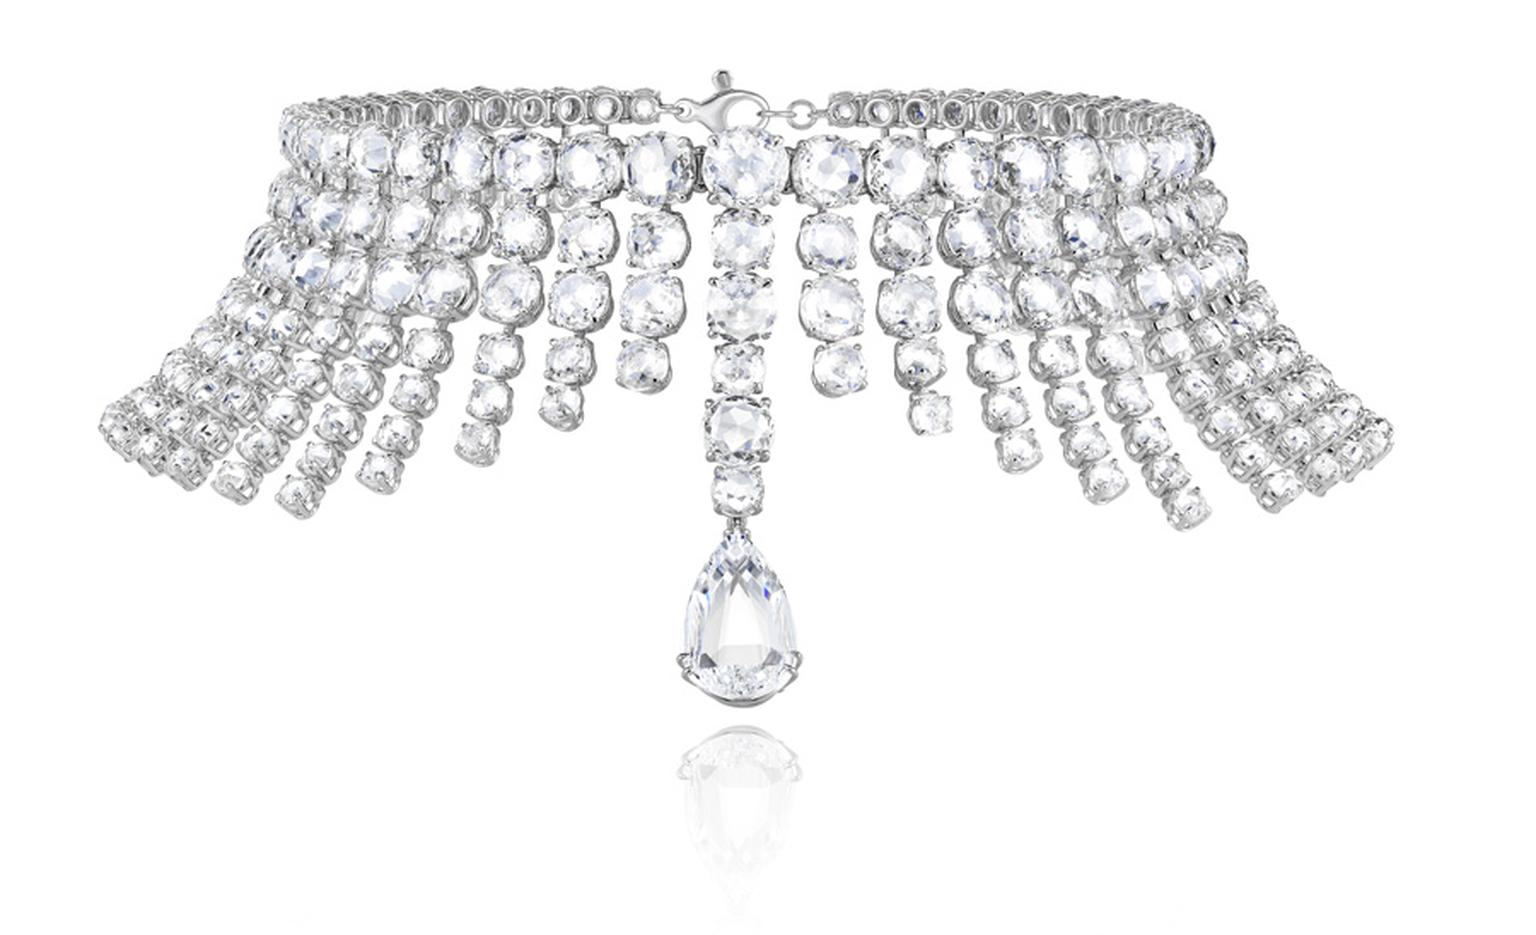 Chopard-Diamond-Necklace-from-the-Red-Carpet-Collection-2013.jpg